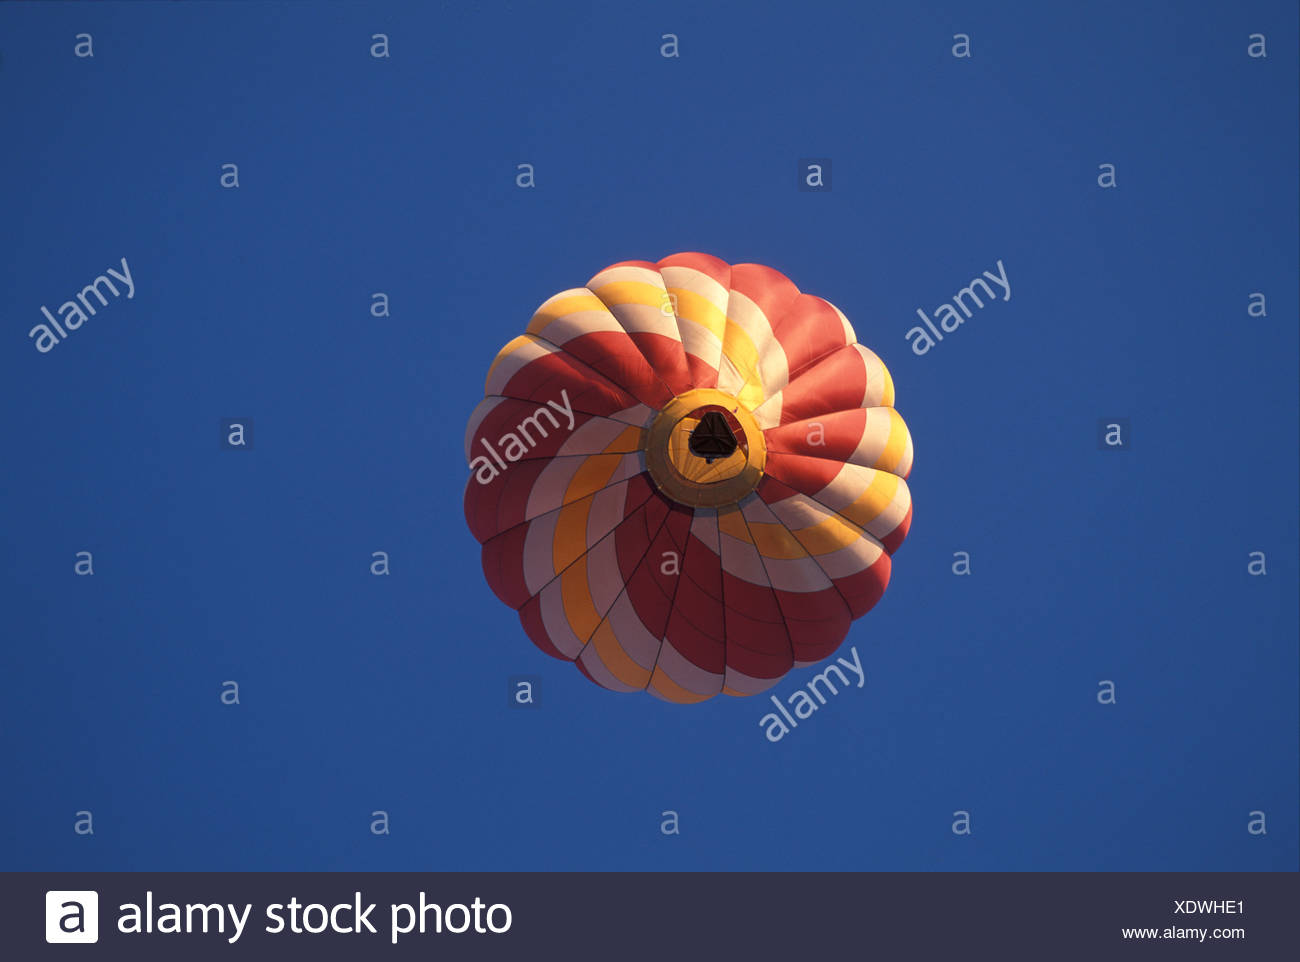 Red and yellow hot-air baloon in the blue sky - Stock Image